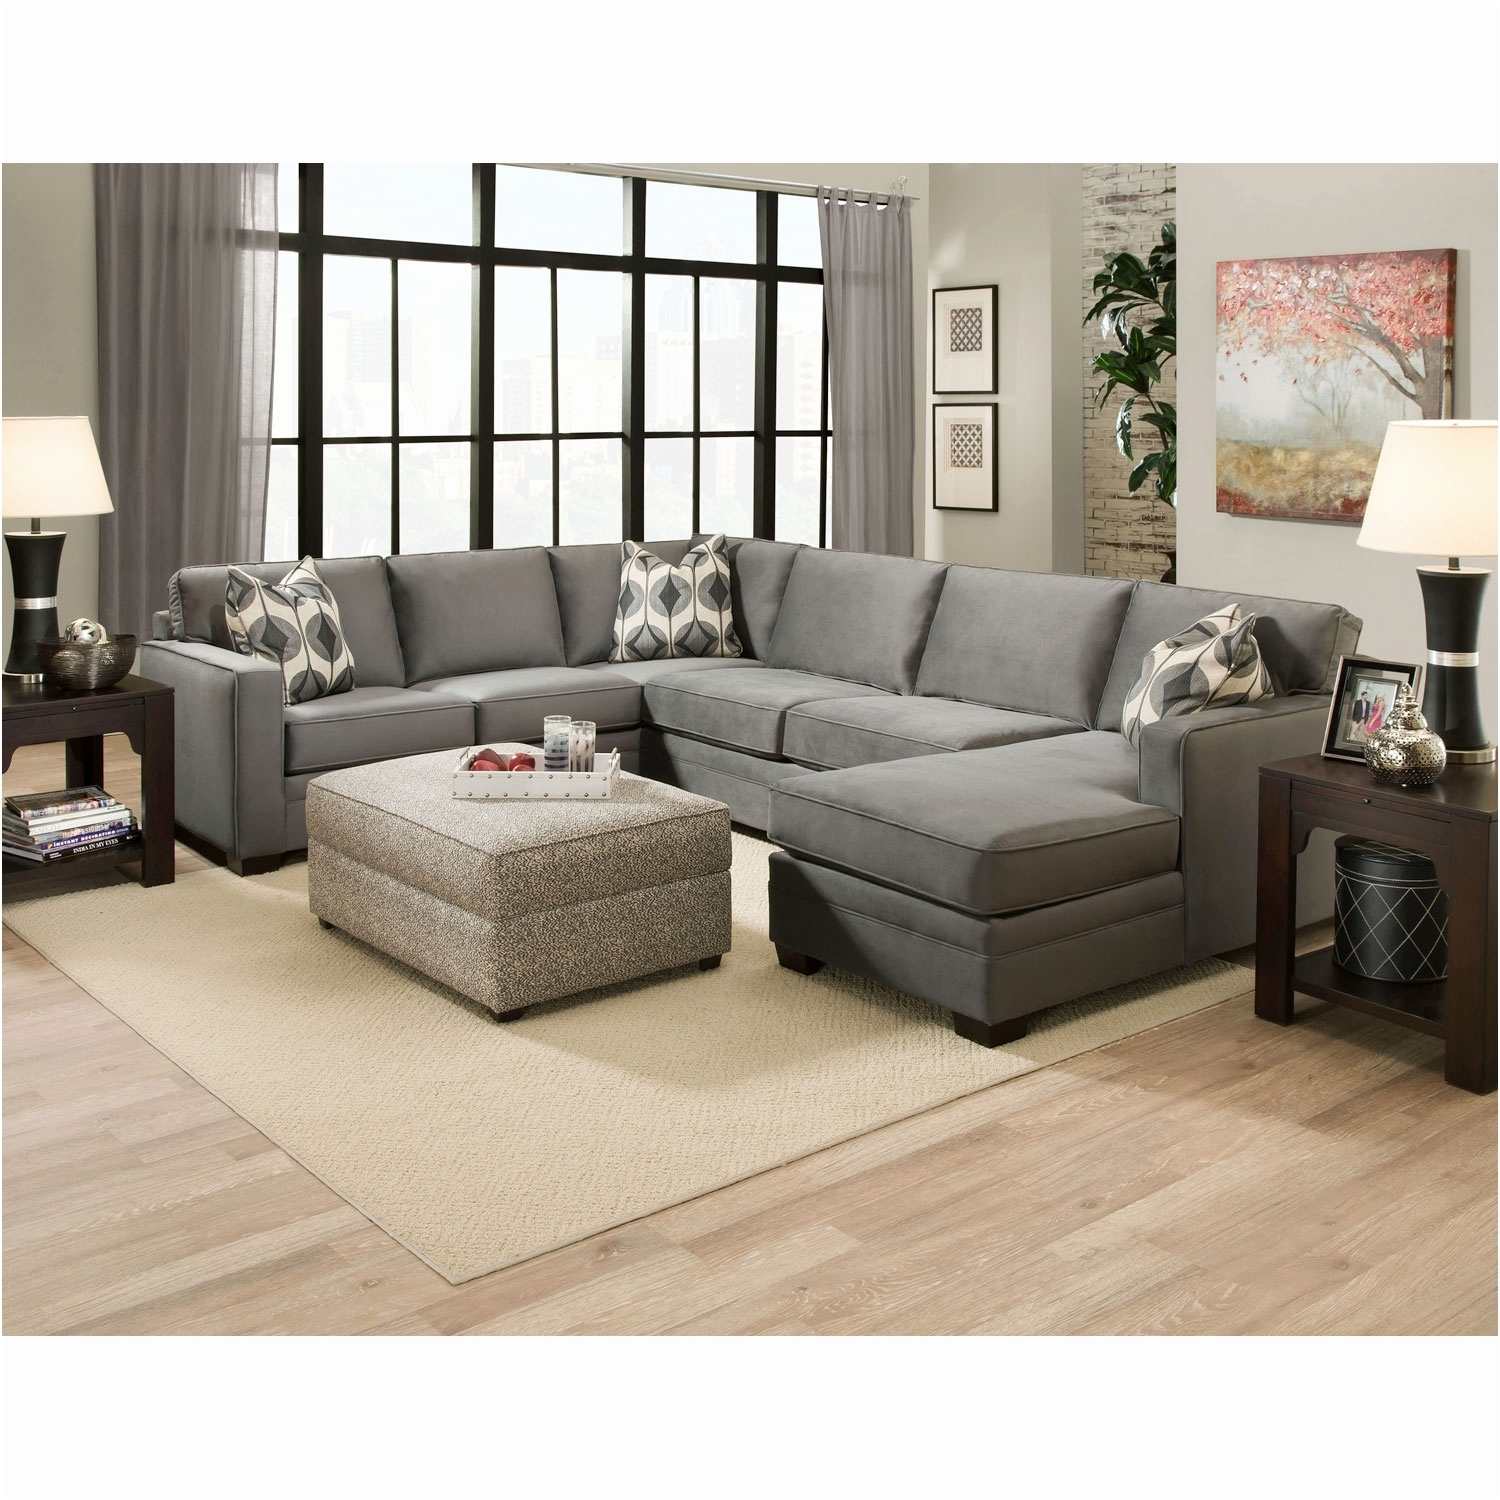 Trendy Lovely Sofa Sectionals On Sale Fresh – Sofa Furnitures (View 12 of 15)